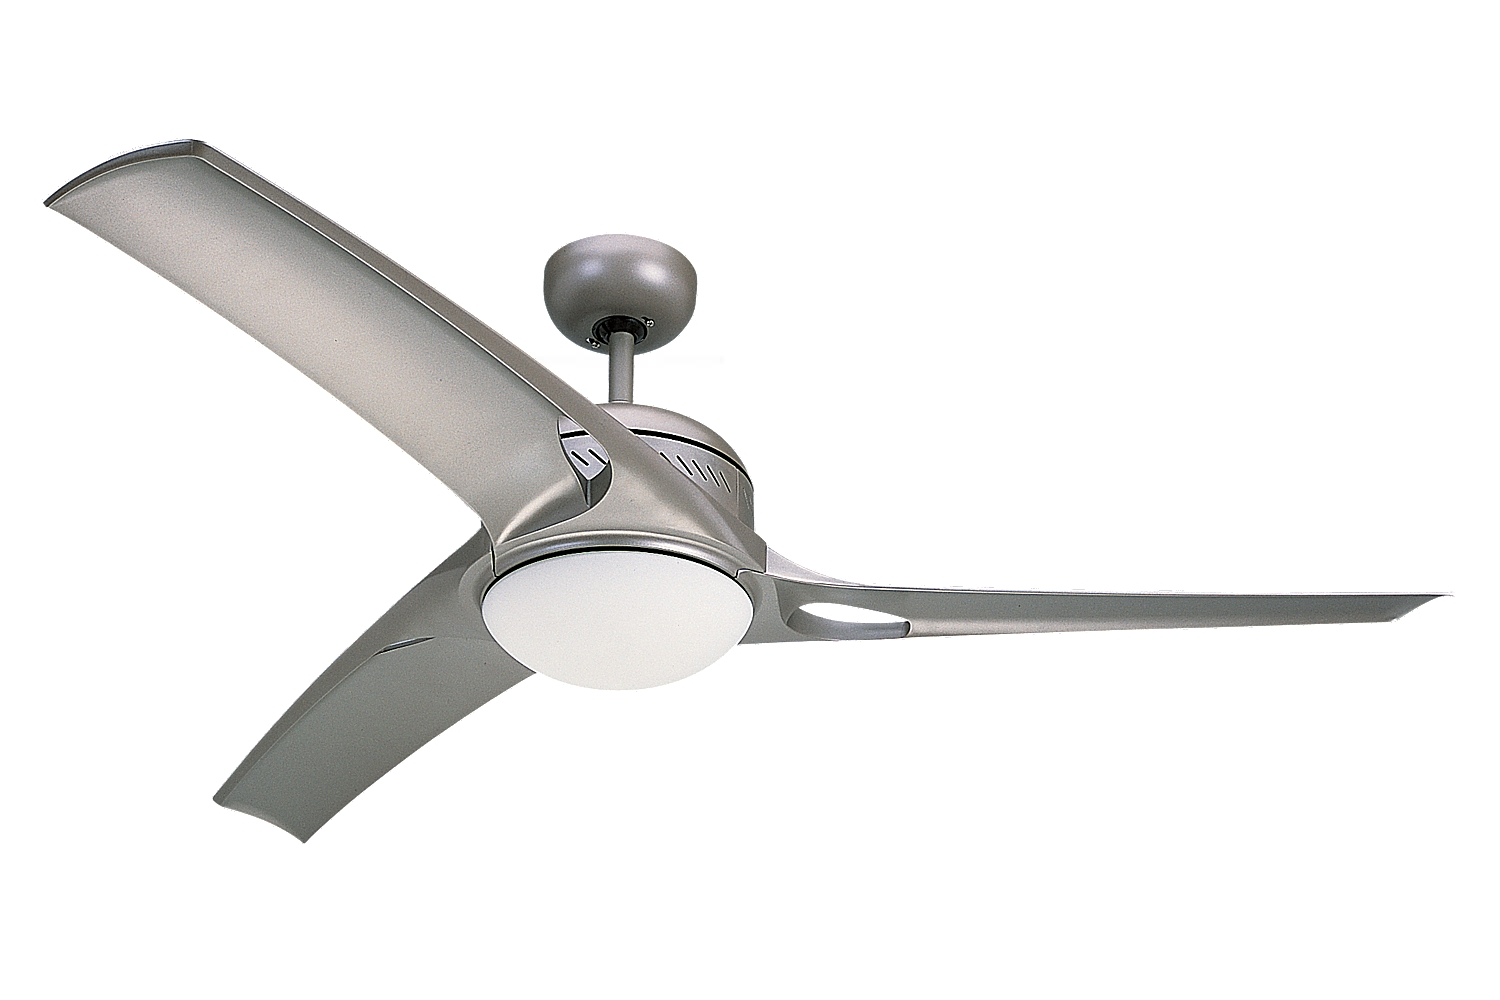 Mach One Ceiling Fan With Light By Monte Carlo